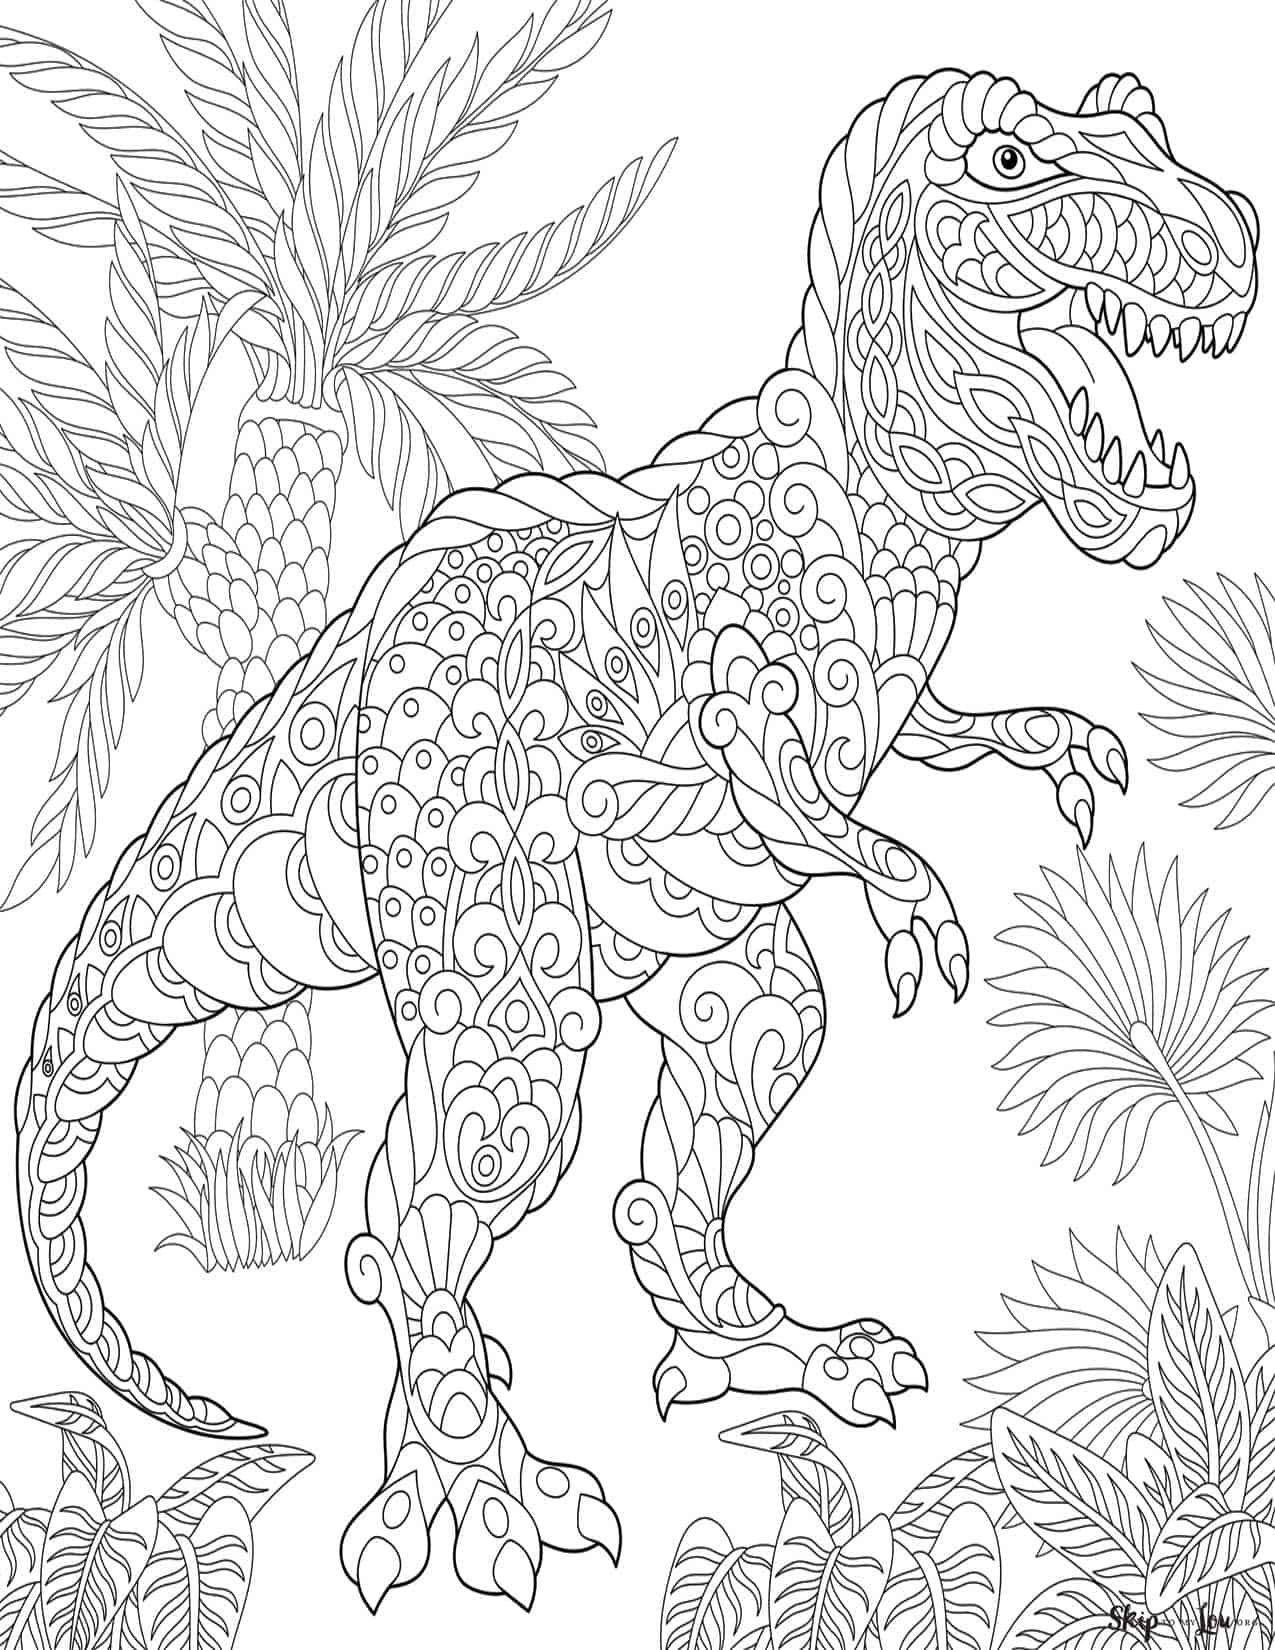 Dinosaur Coloring Pages In 2020 Dinosaur Coloring Pages Dinosaur Coloring Cool Coloring Pages